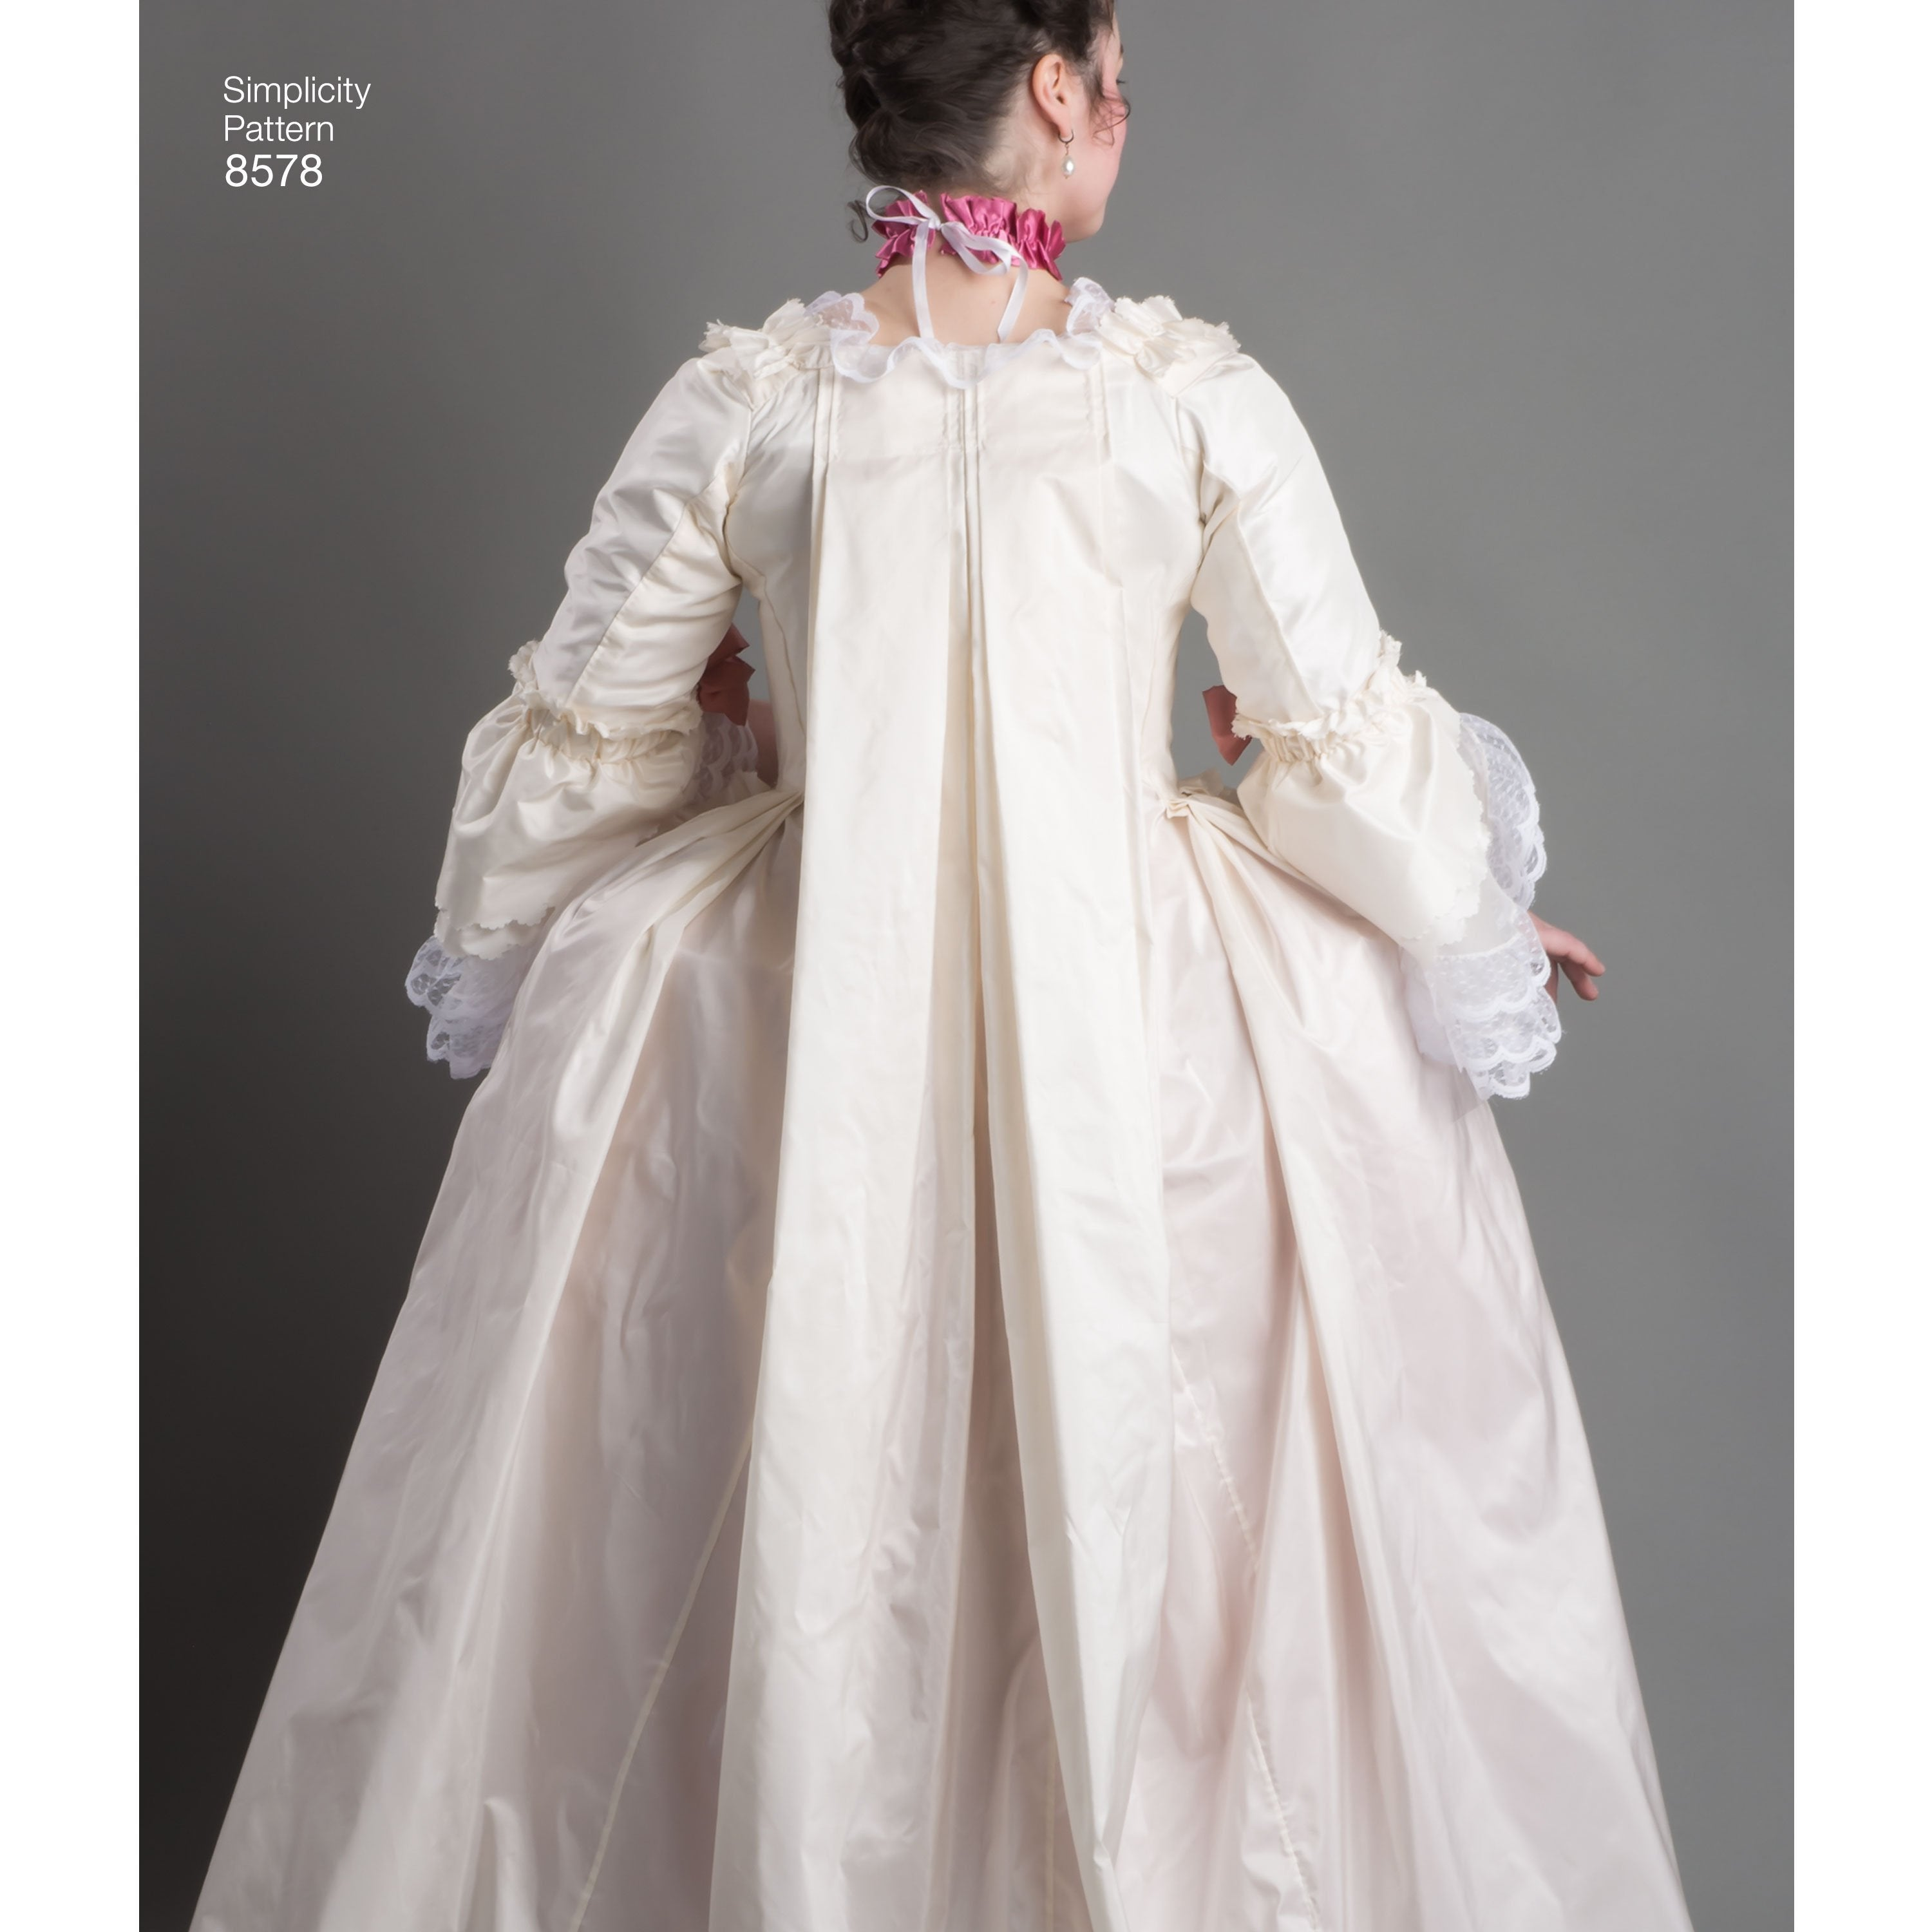 S8578  Women's' 18th Century Gown